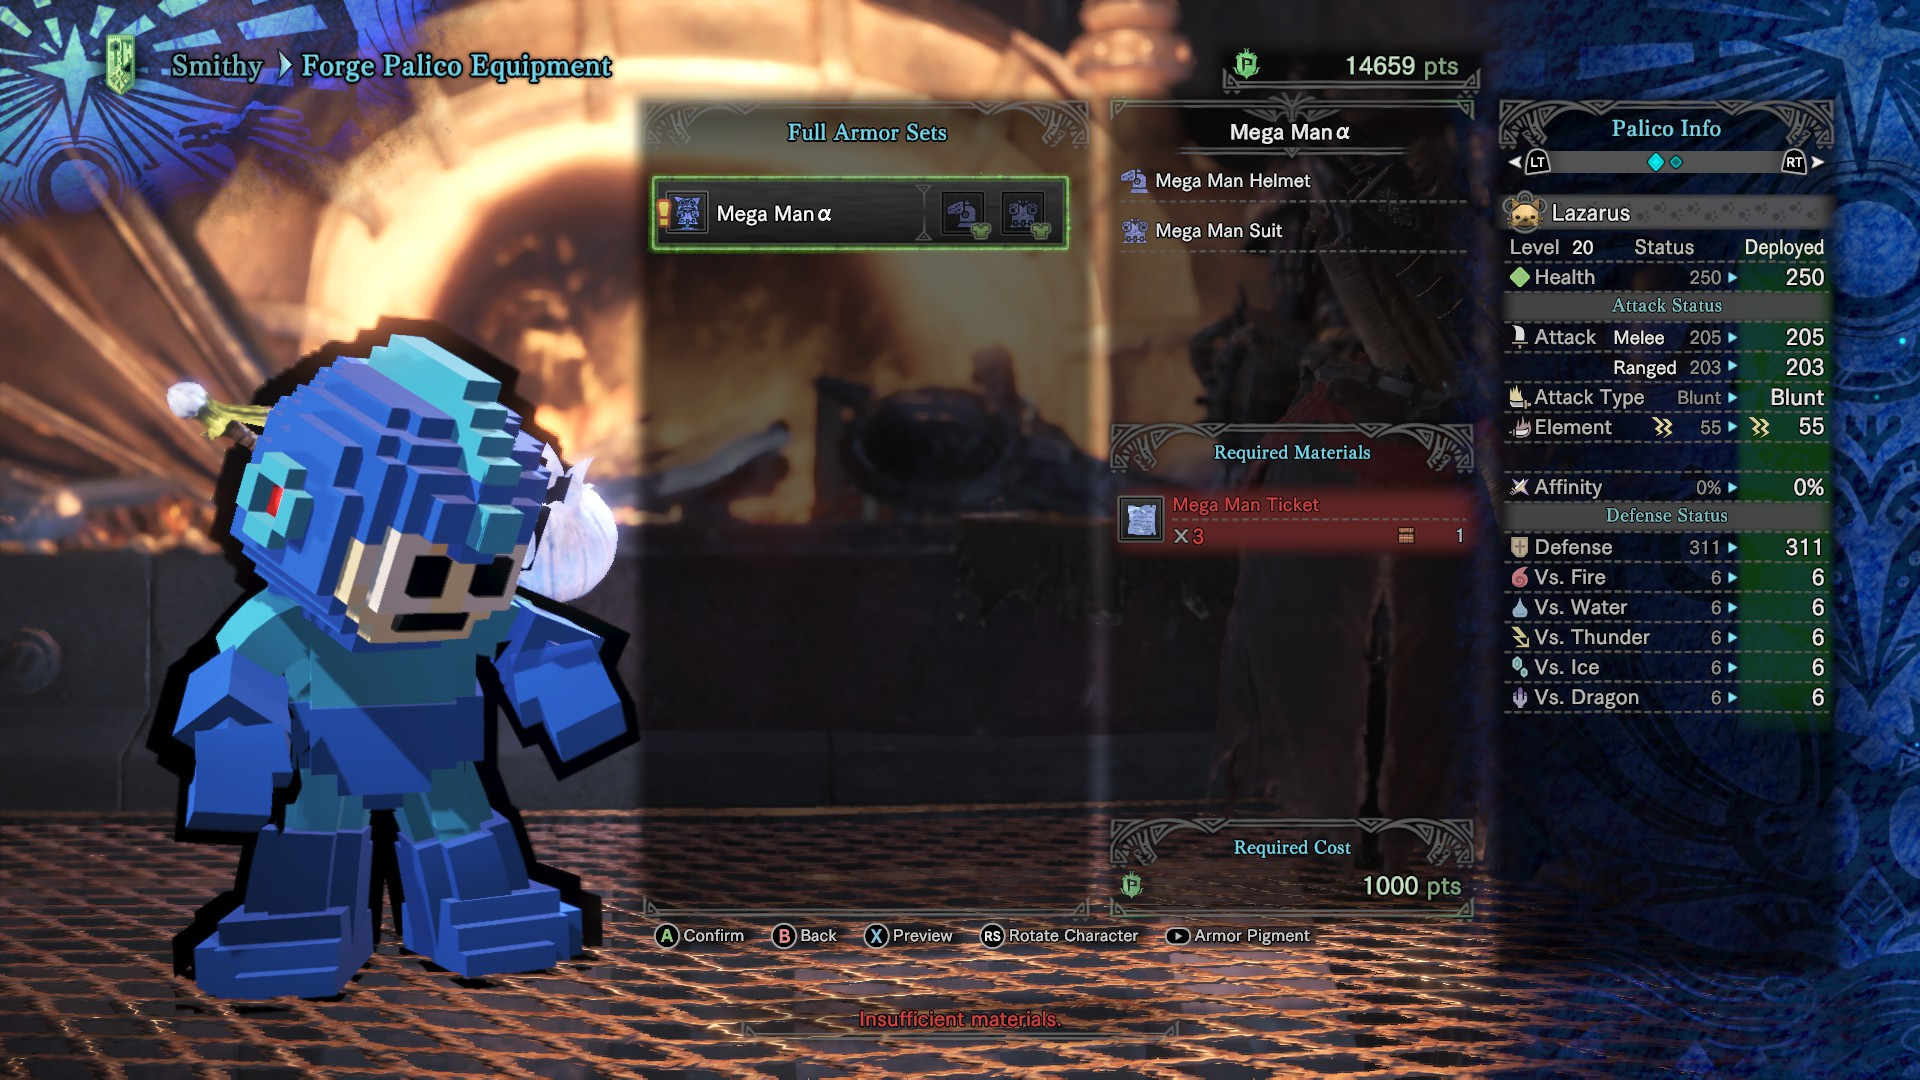 A Palico wearing the Mega Man full armour set.